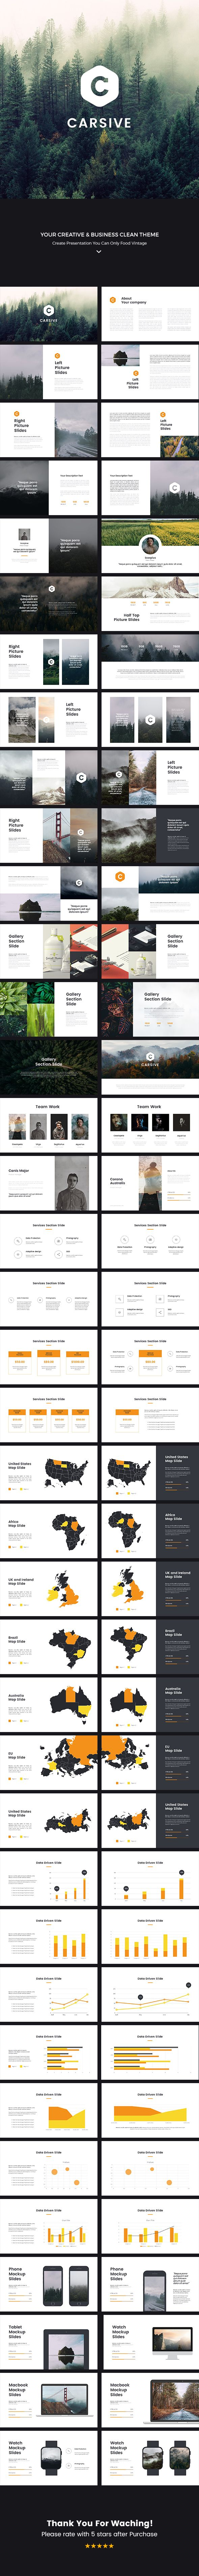 Carsive Clean Powerpoint Template 1920x1080 px #infographic #multipurpose